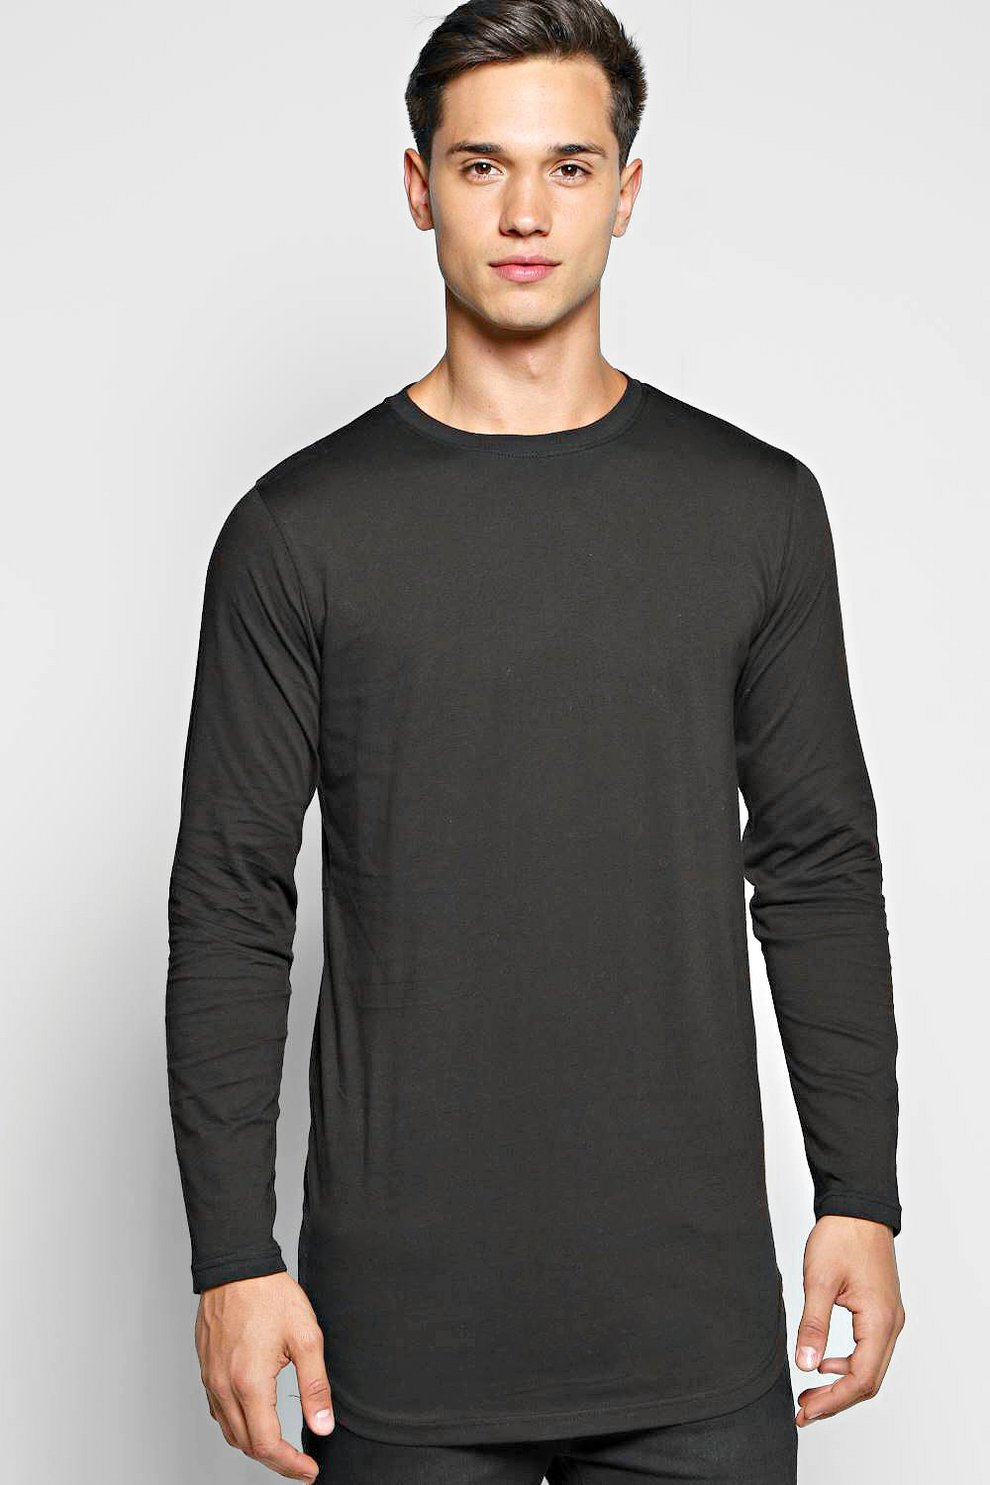 4c3df5f4b Mens Black Long Sleeve Longline T Shirt with Scoop Hem. Hover to zoom